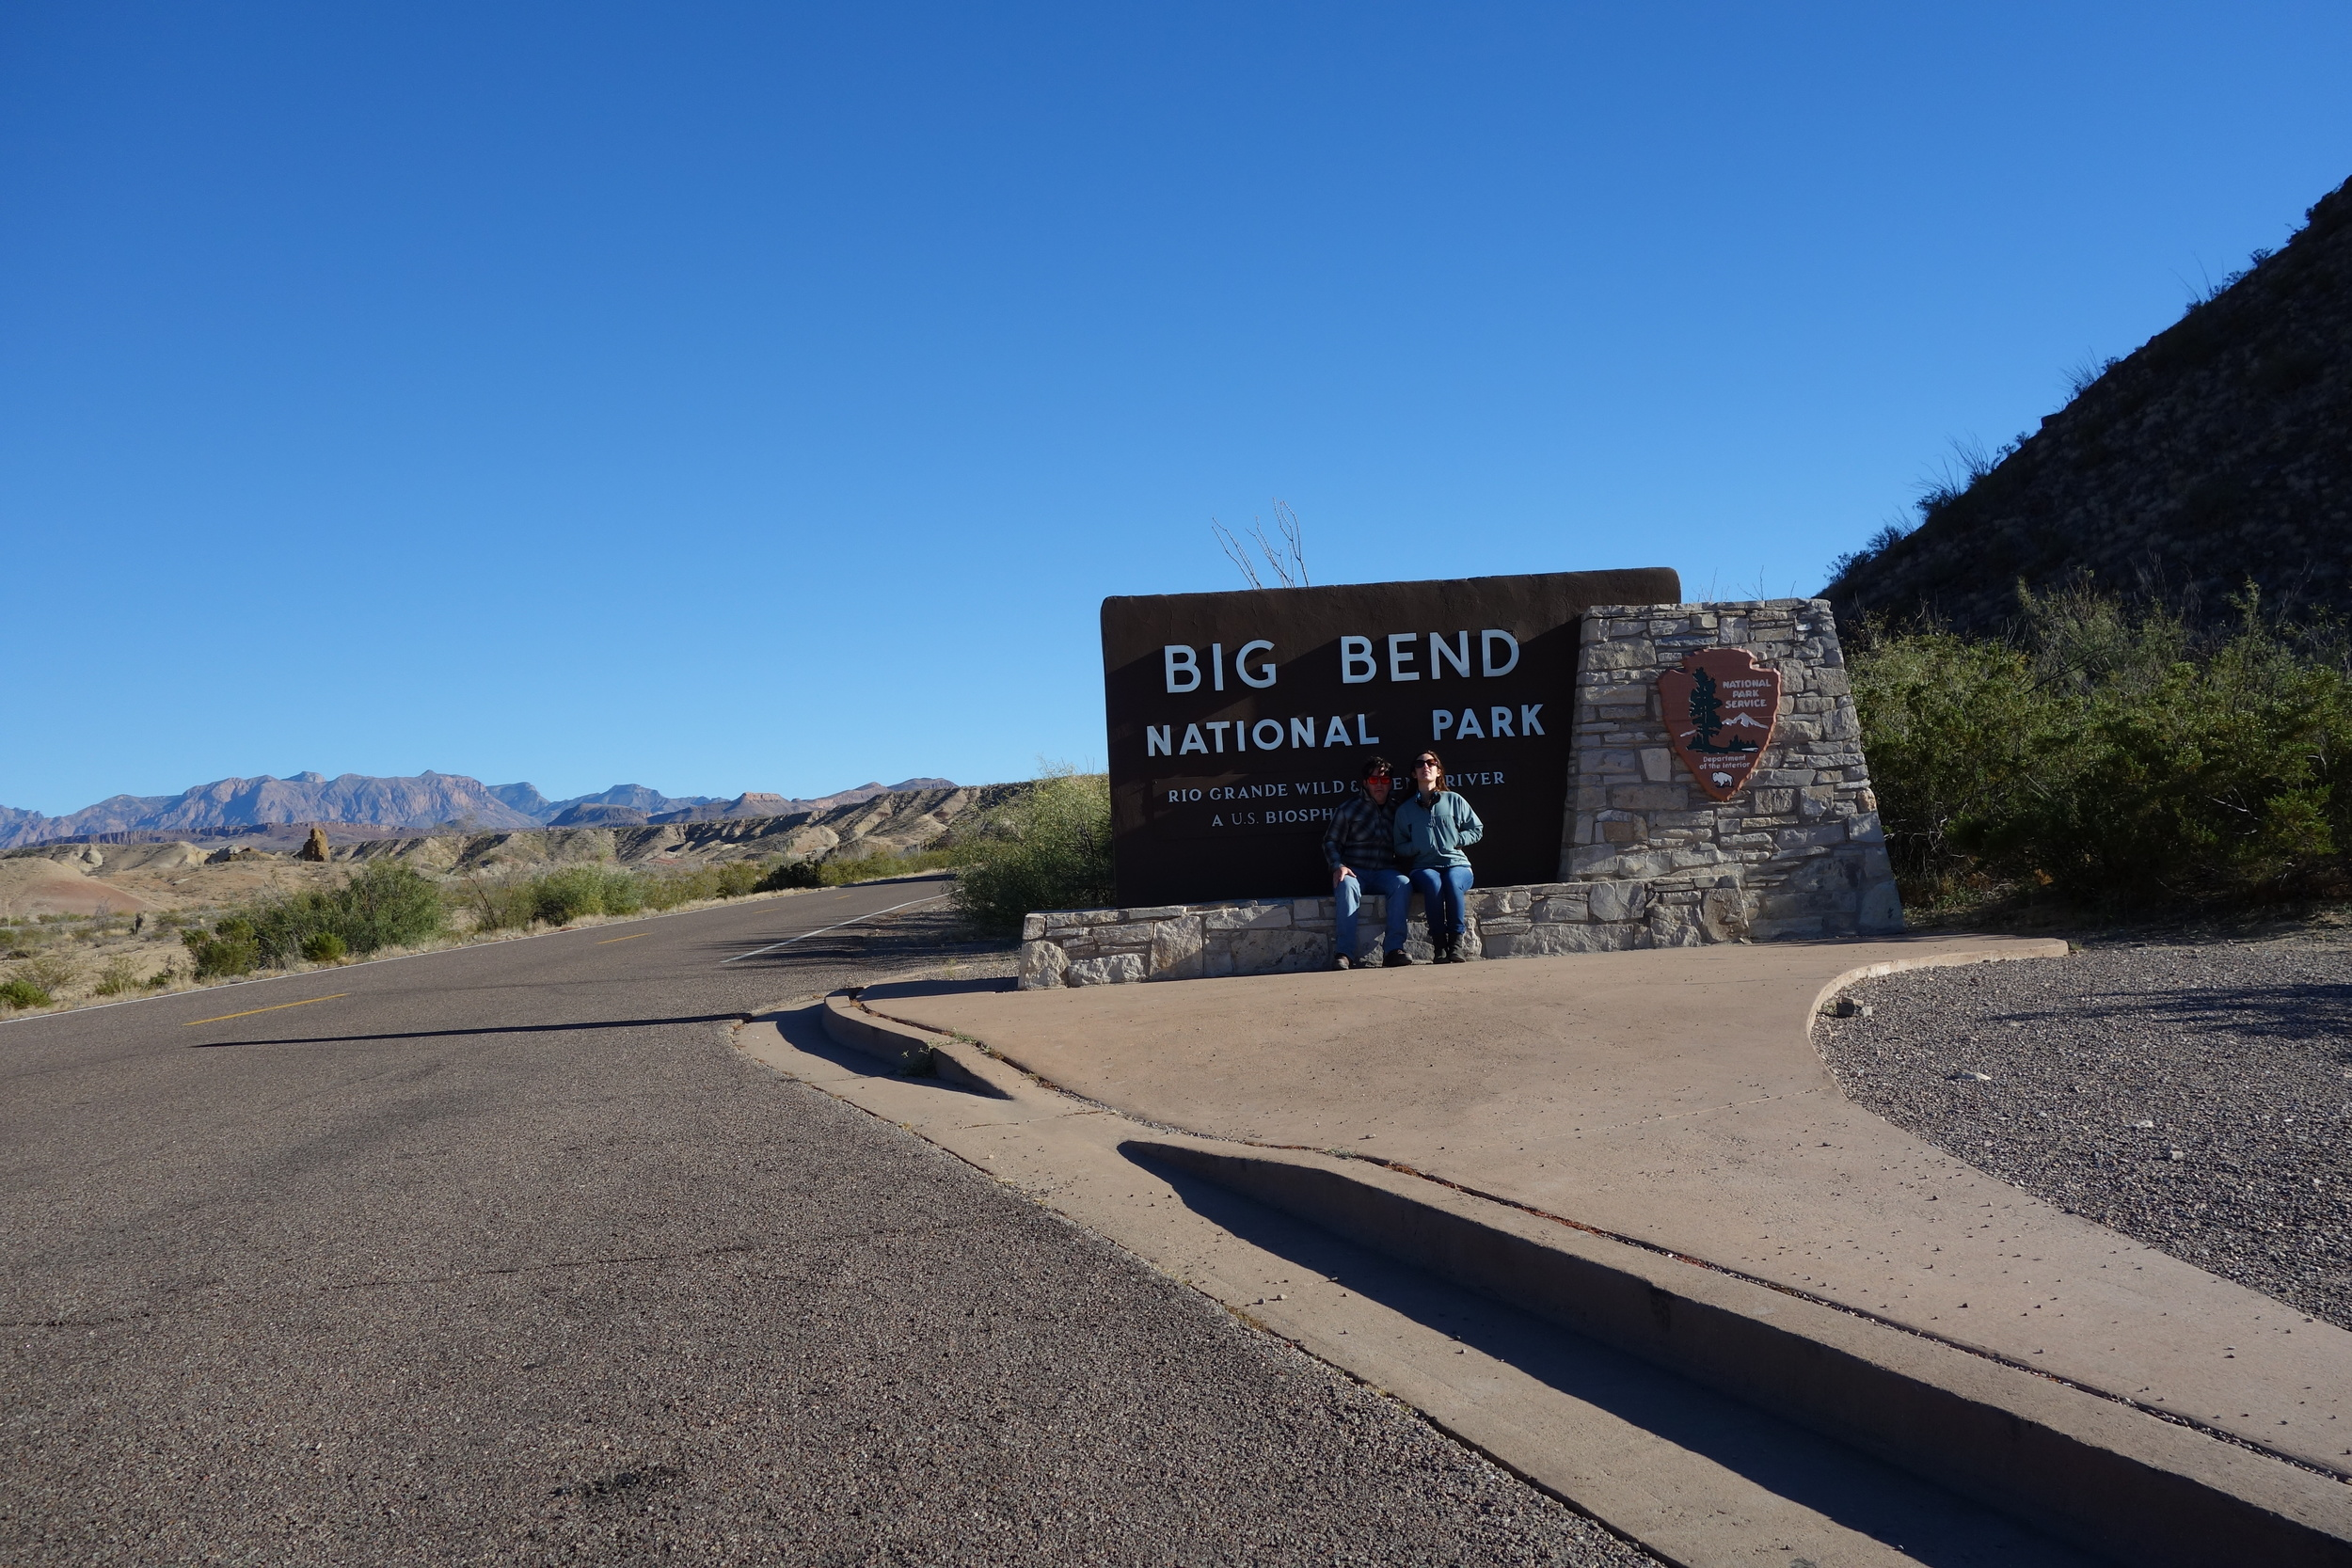 Big Bend. Named for the northern bend the rio grande makes in west texas. Instead of heading south to mexico, the river decided to stay in the USA. This park is so cool. It has its own mountain range, no other park can boast that. The chihuahuan desert is a marvel in itself.